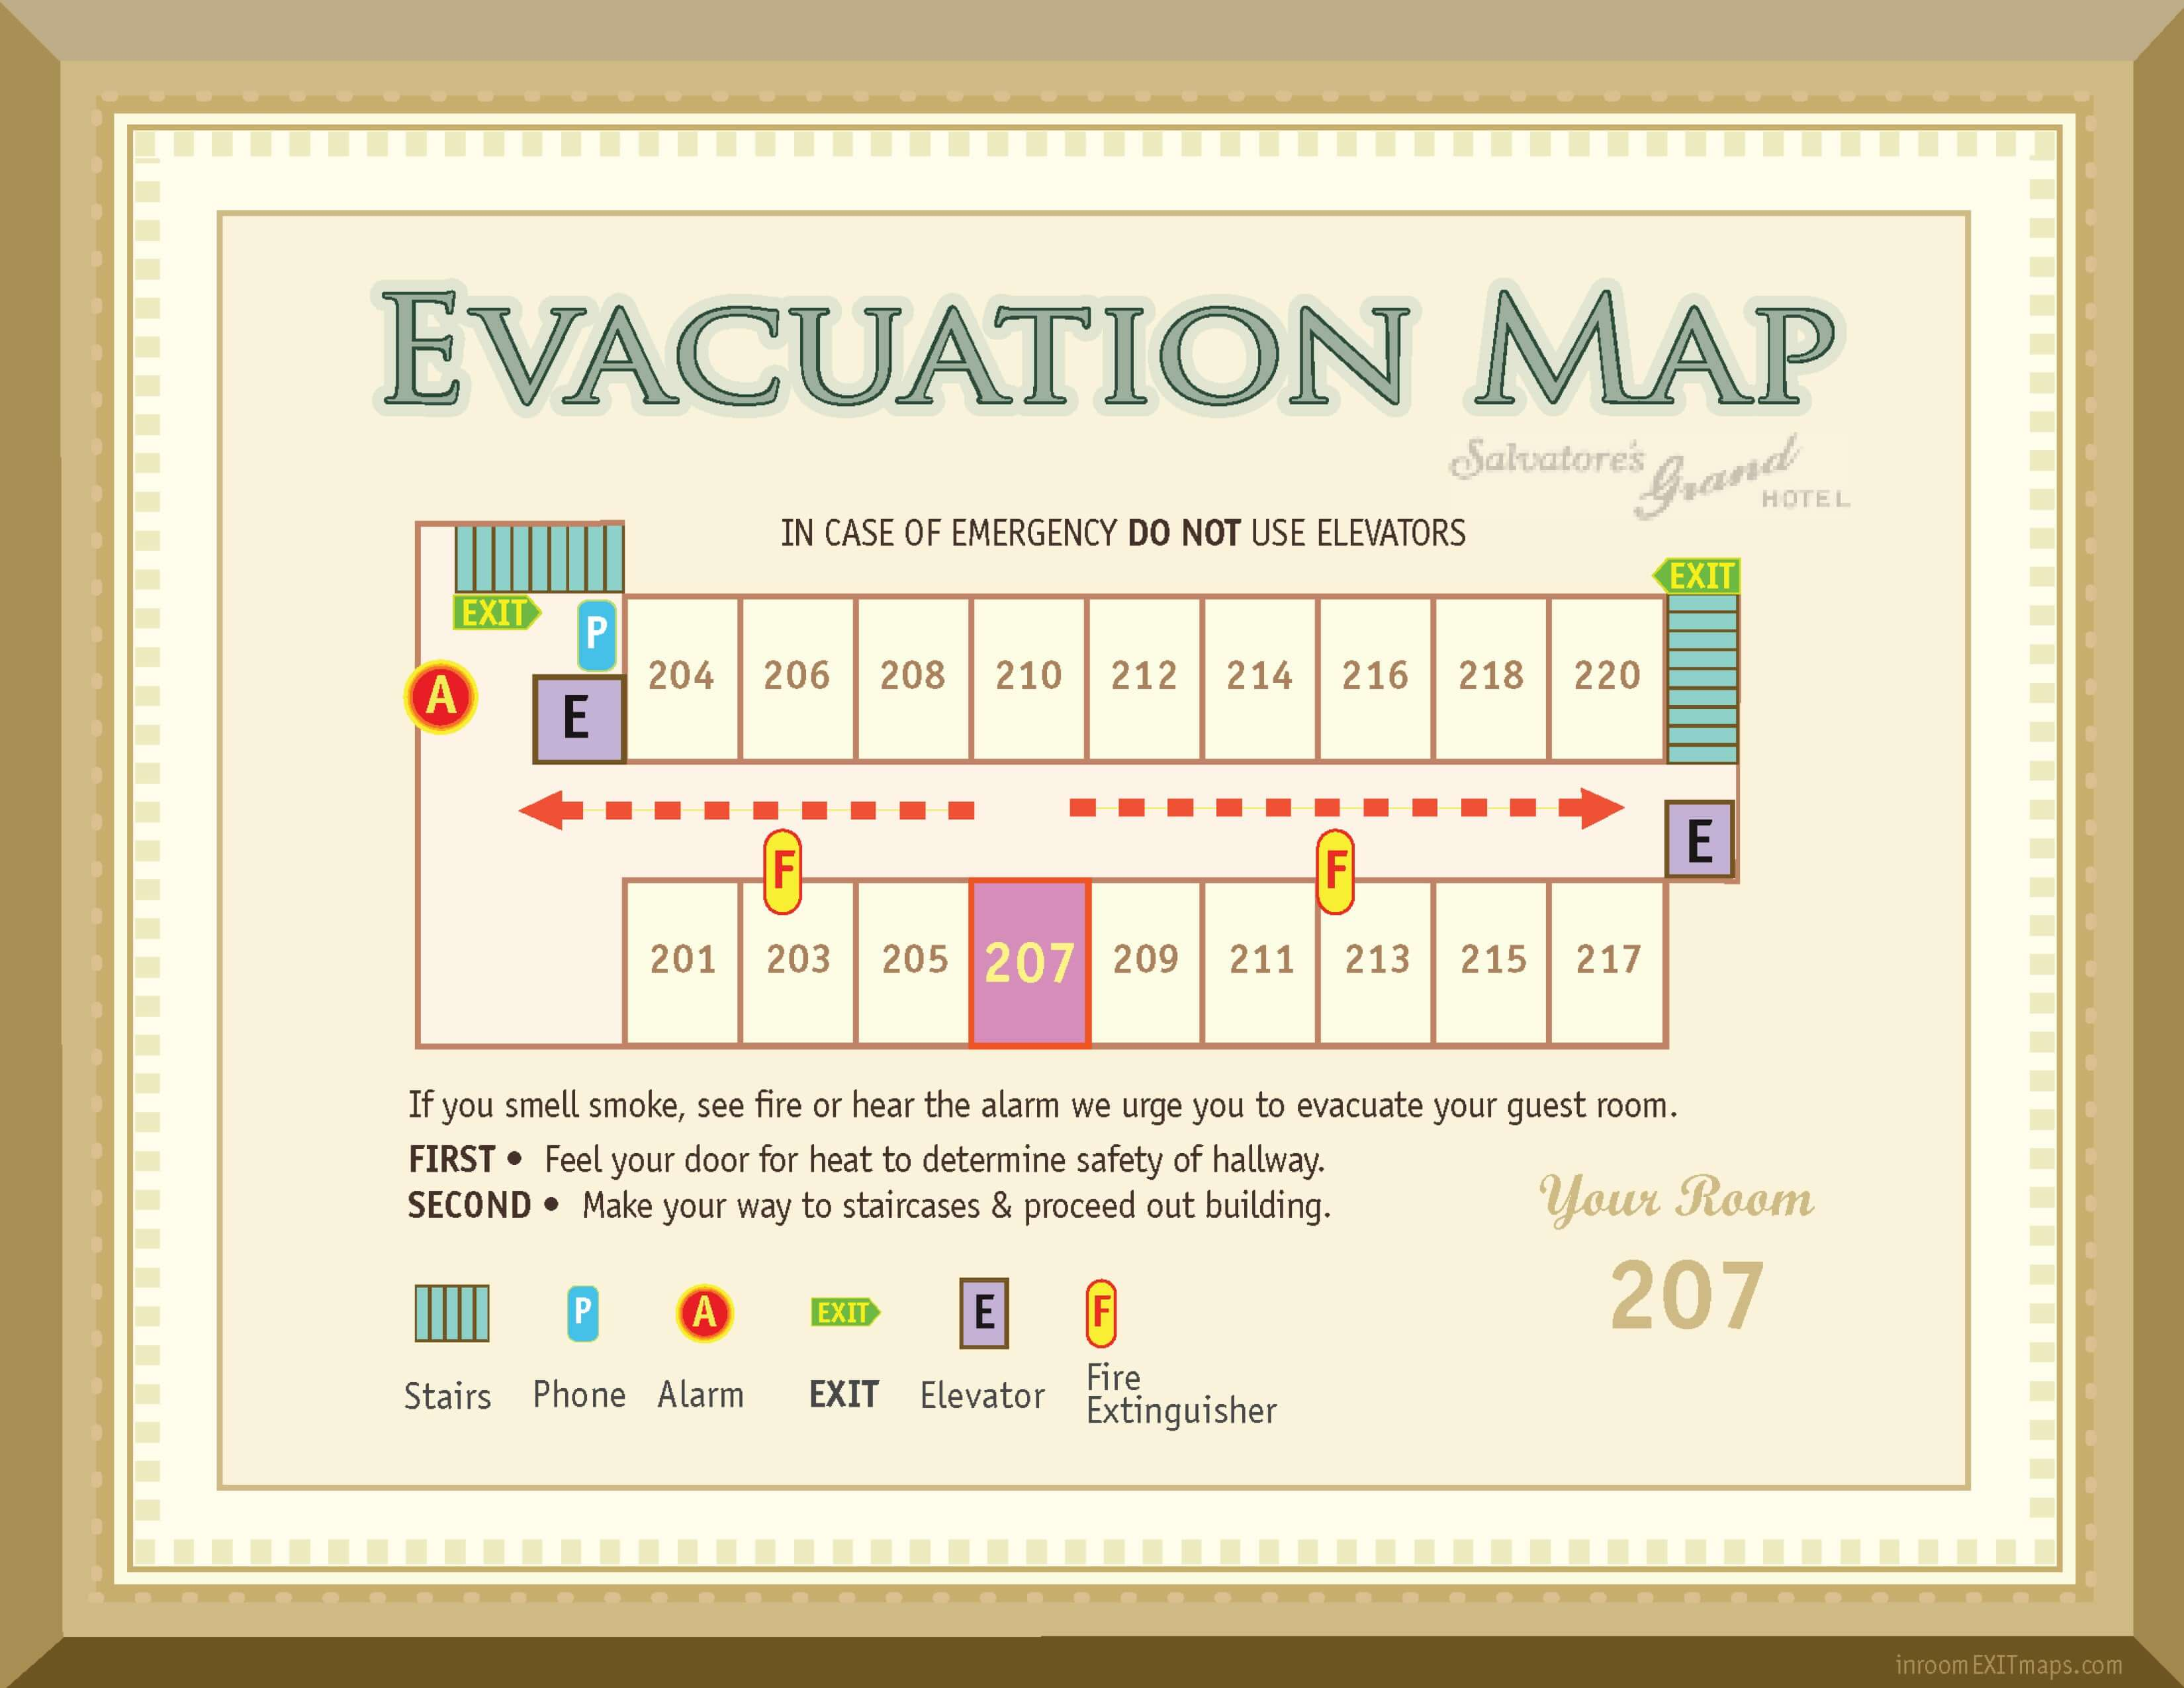 New_York_*207_Evacuation_Map